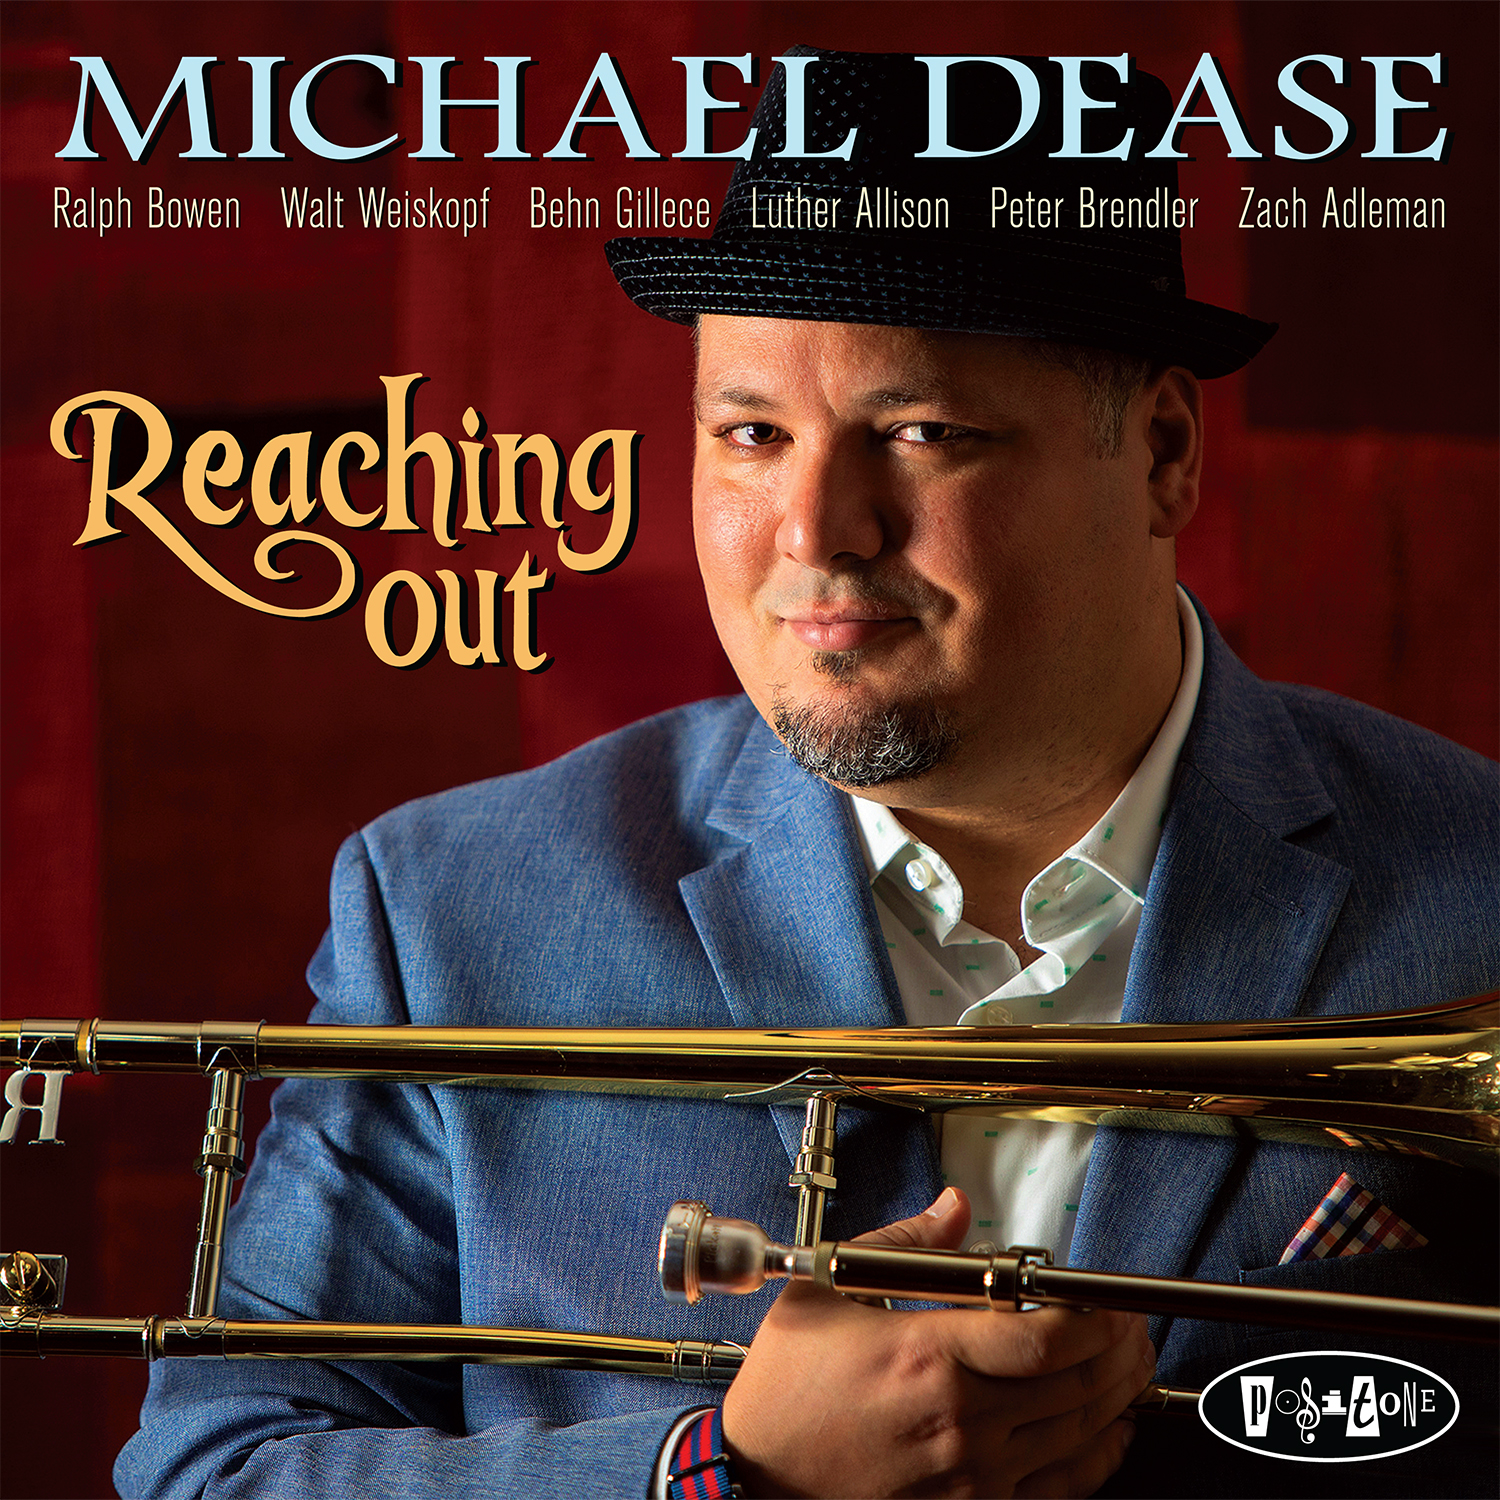 - Michael's 5th studio album for Posi-Tone Records, REACHING OUT is available for purchase. A mix of hard swinging, in the pocket grooves with saxophone masters Walt Weiskopf and Ralph Bowen, assisted by leading talents of the next generation Luther Allison, Peter Brendler and Zach Adleman. Featuring guest vibraphonist Behn Gillece and tributes to several of Michael's influences: Cedar Walton, Kenny Drew,Steve Turre, Conrad Herwig, Boyz II Men, 90's alt rock, Malcolm Gladwell,Sir Paul McCartney and New York City.